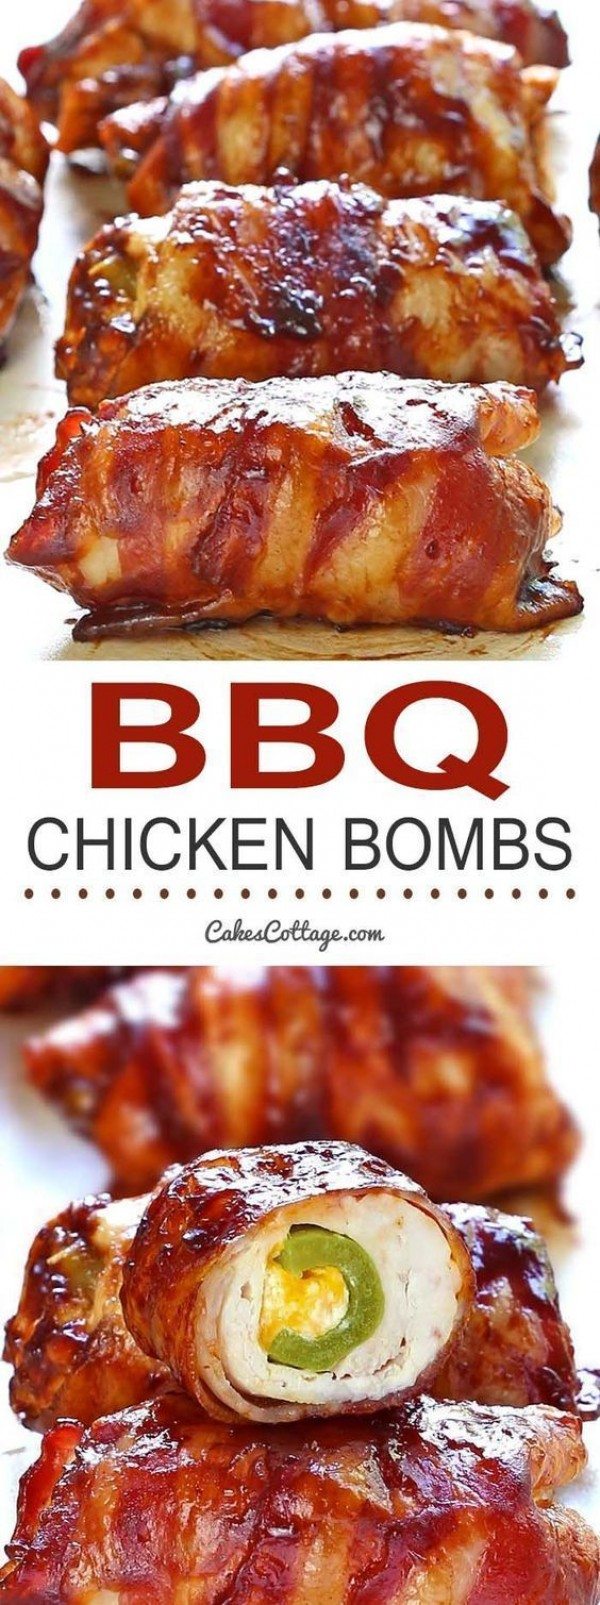 50 Best Chicken Recipes Ever - Check out this recipe for BBQ chicken bombs. Yummy! #RecipeIdeas @recipes_to_go